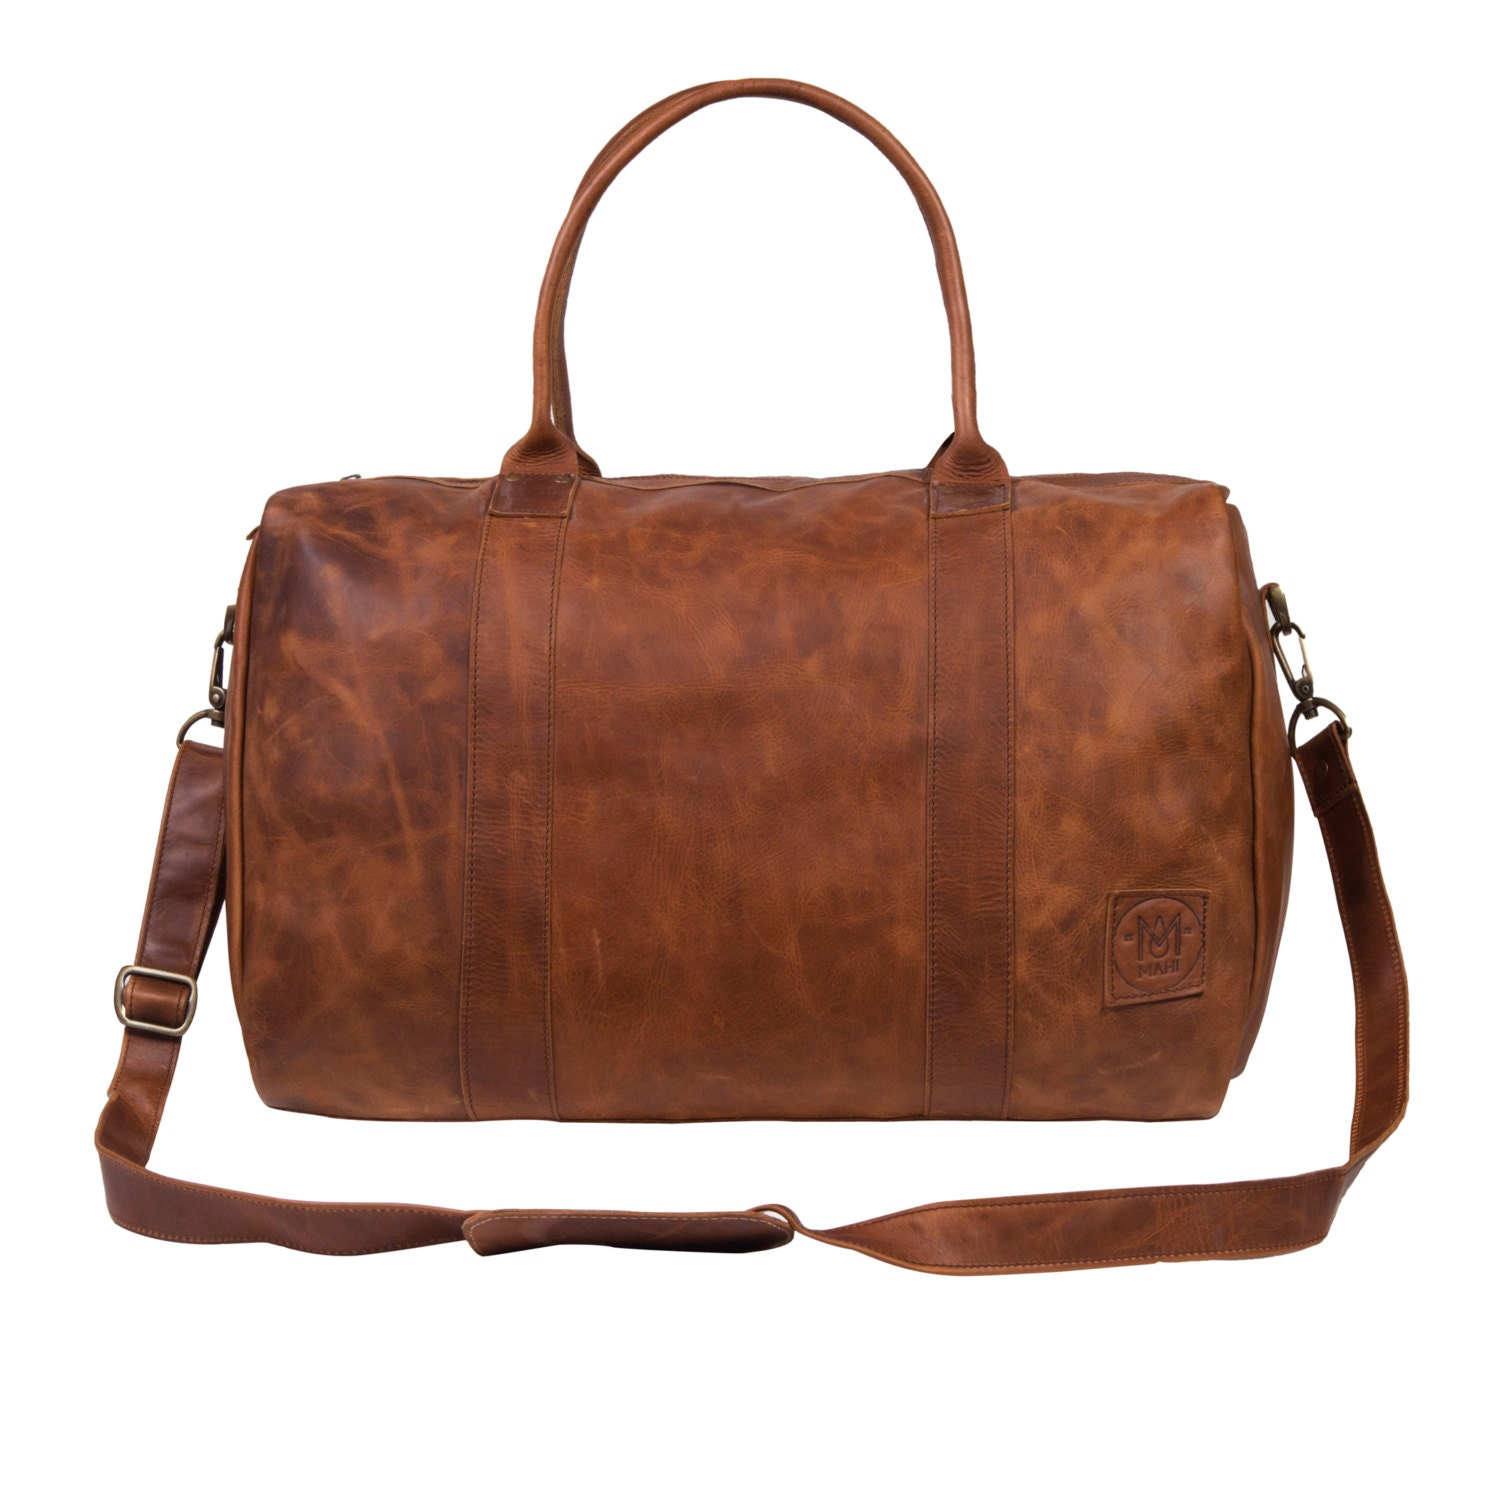 DeepCompact Holdall  Weekend Bag  Overnight Bag in Vintage Brown by MAHI Leather